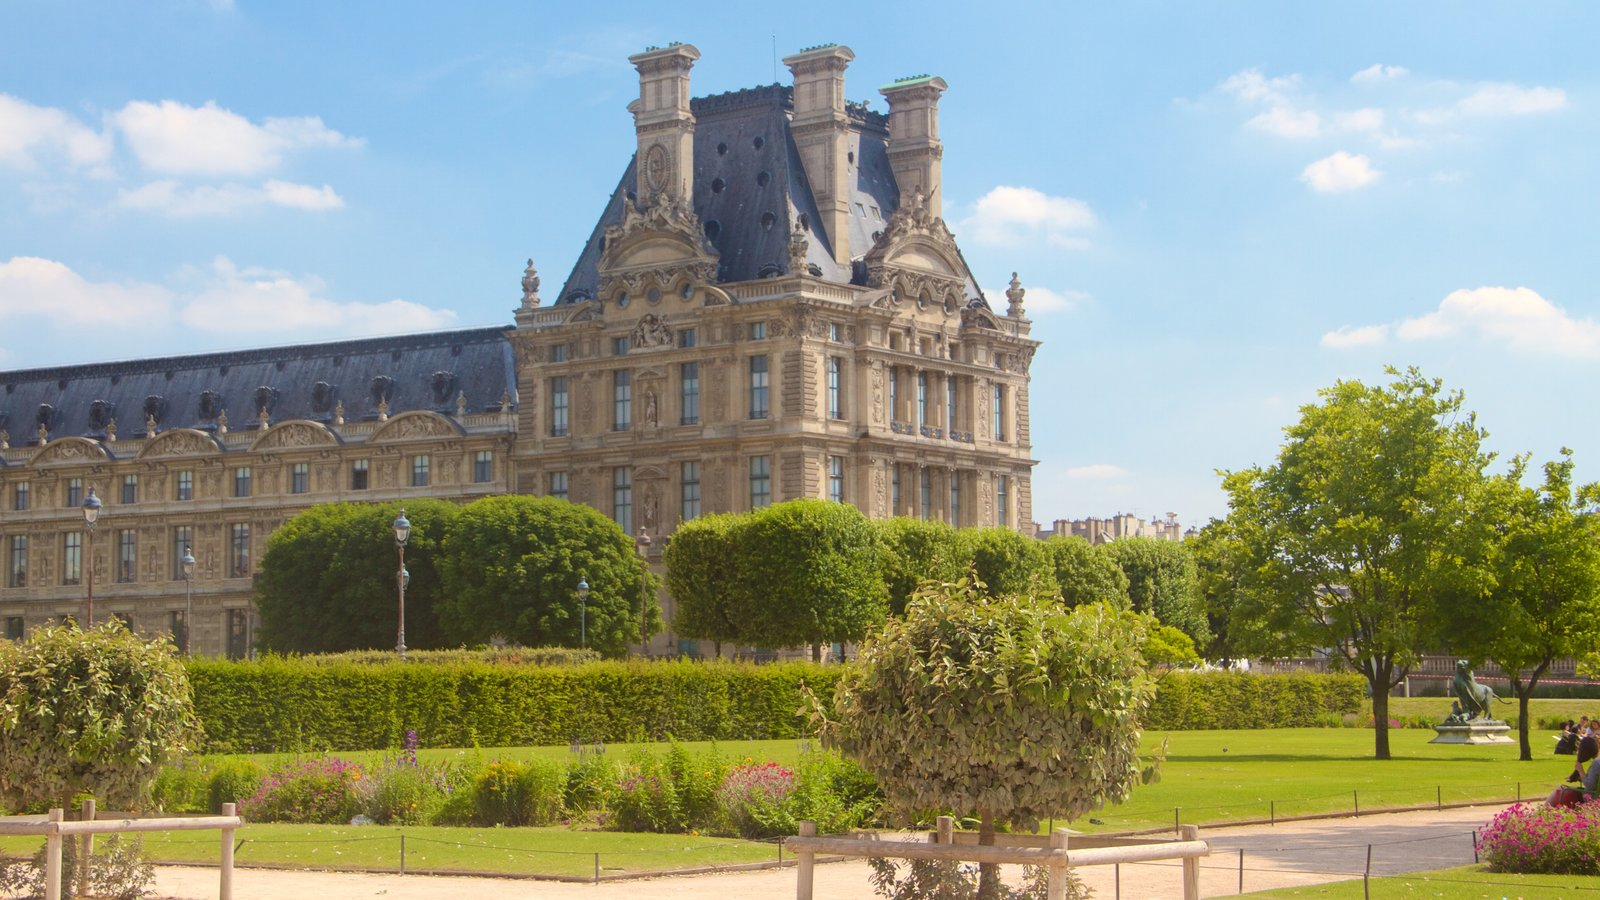 Tuileries garden pictures view photos images of for Jardins tuileries paris france